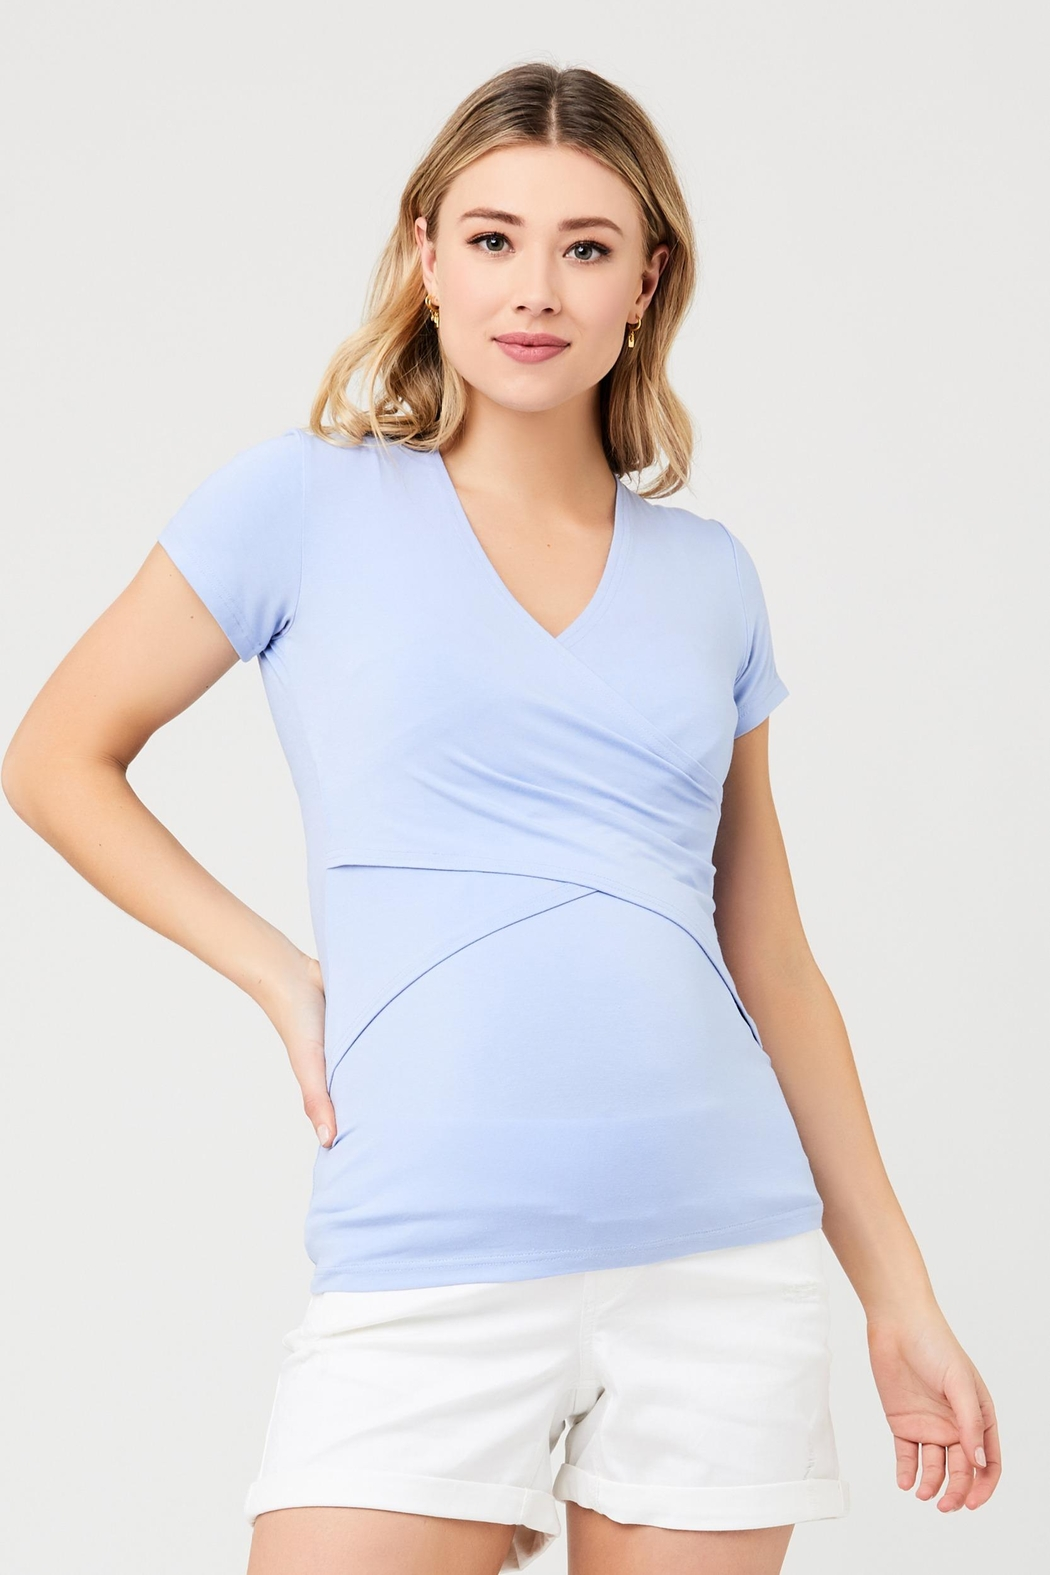 Ripe Maternity Embrace Tee - Bluebell - Main Image